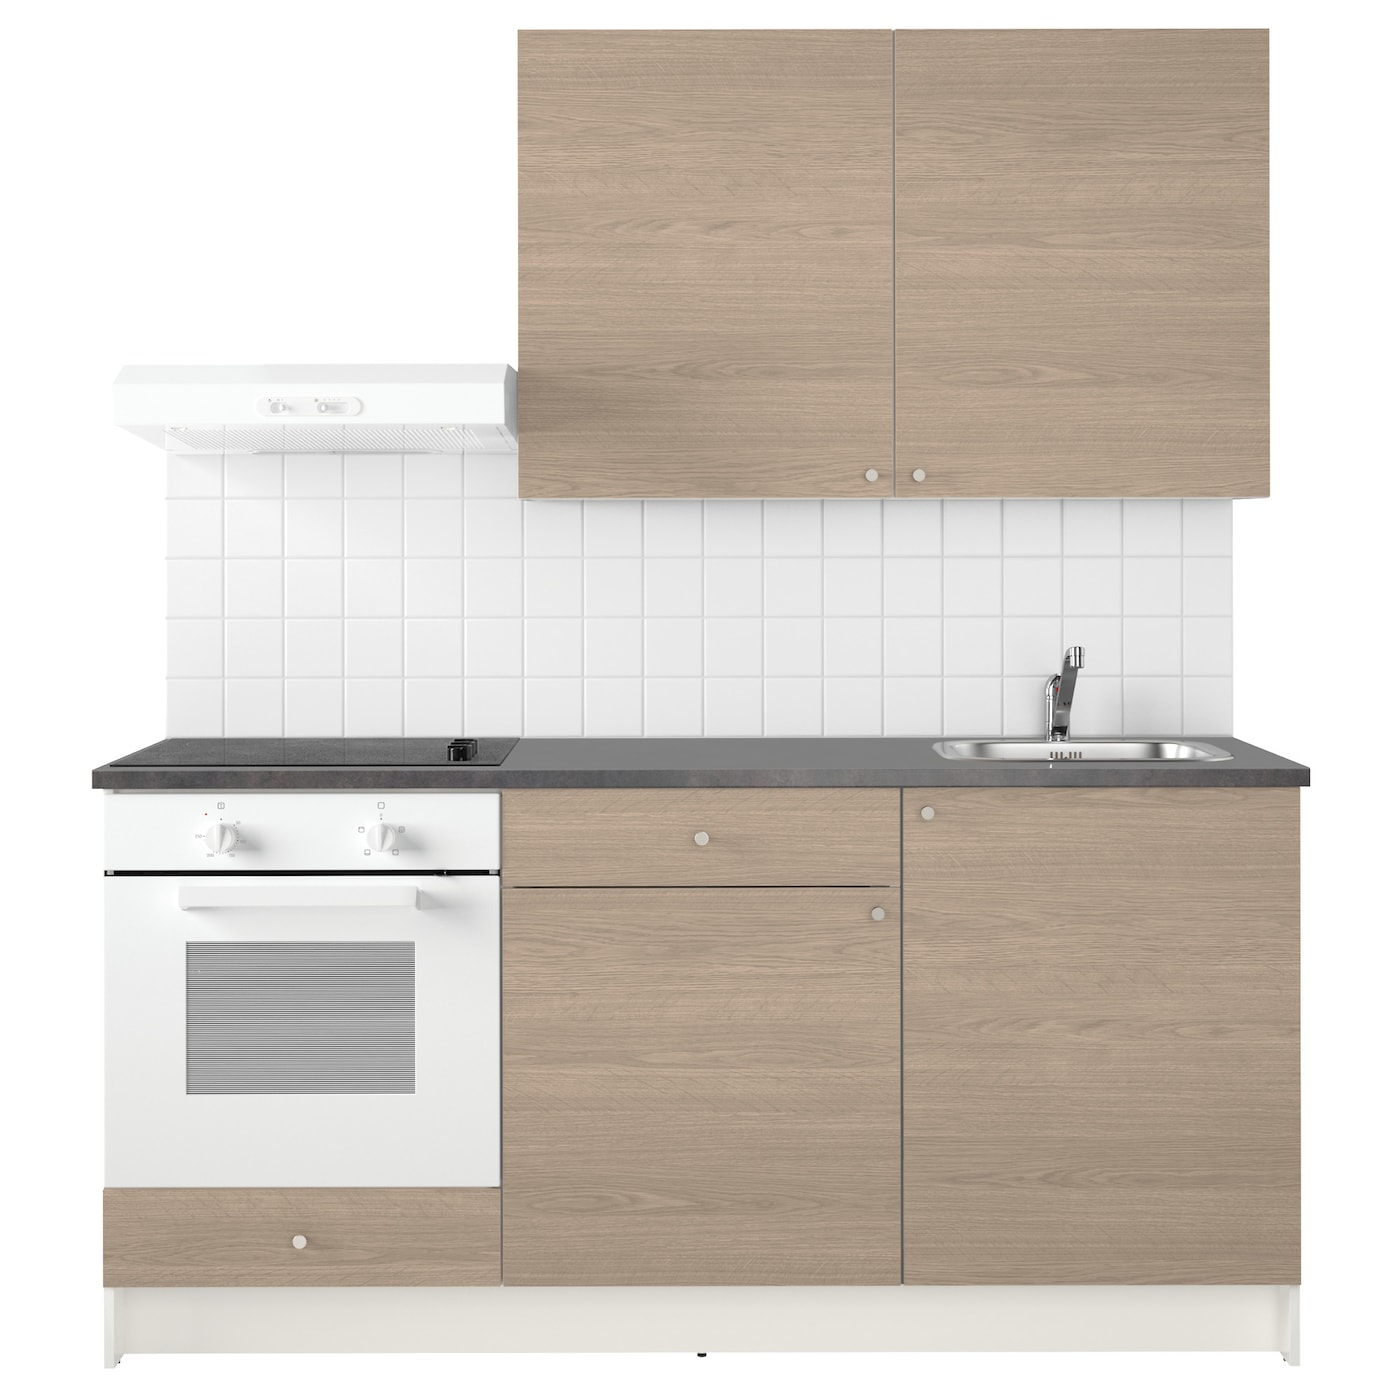 Knoxhult kitchen wood effect grey 180x61x220 cm ikea - Cucina 180 cm ...